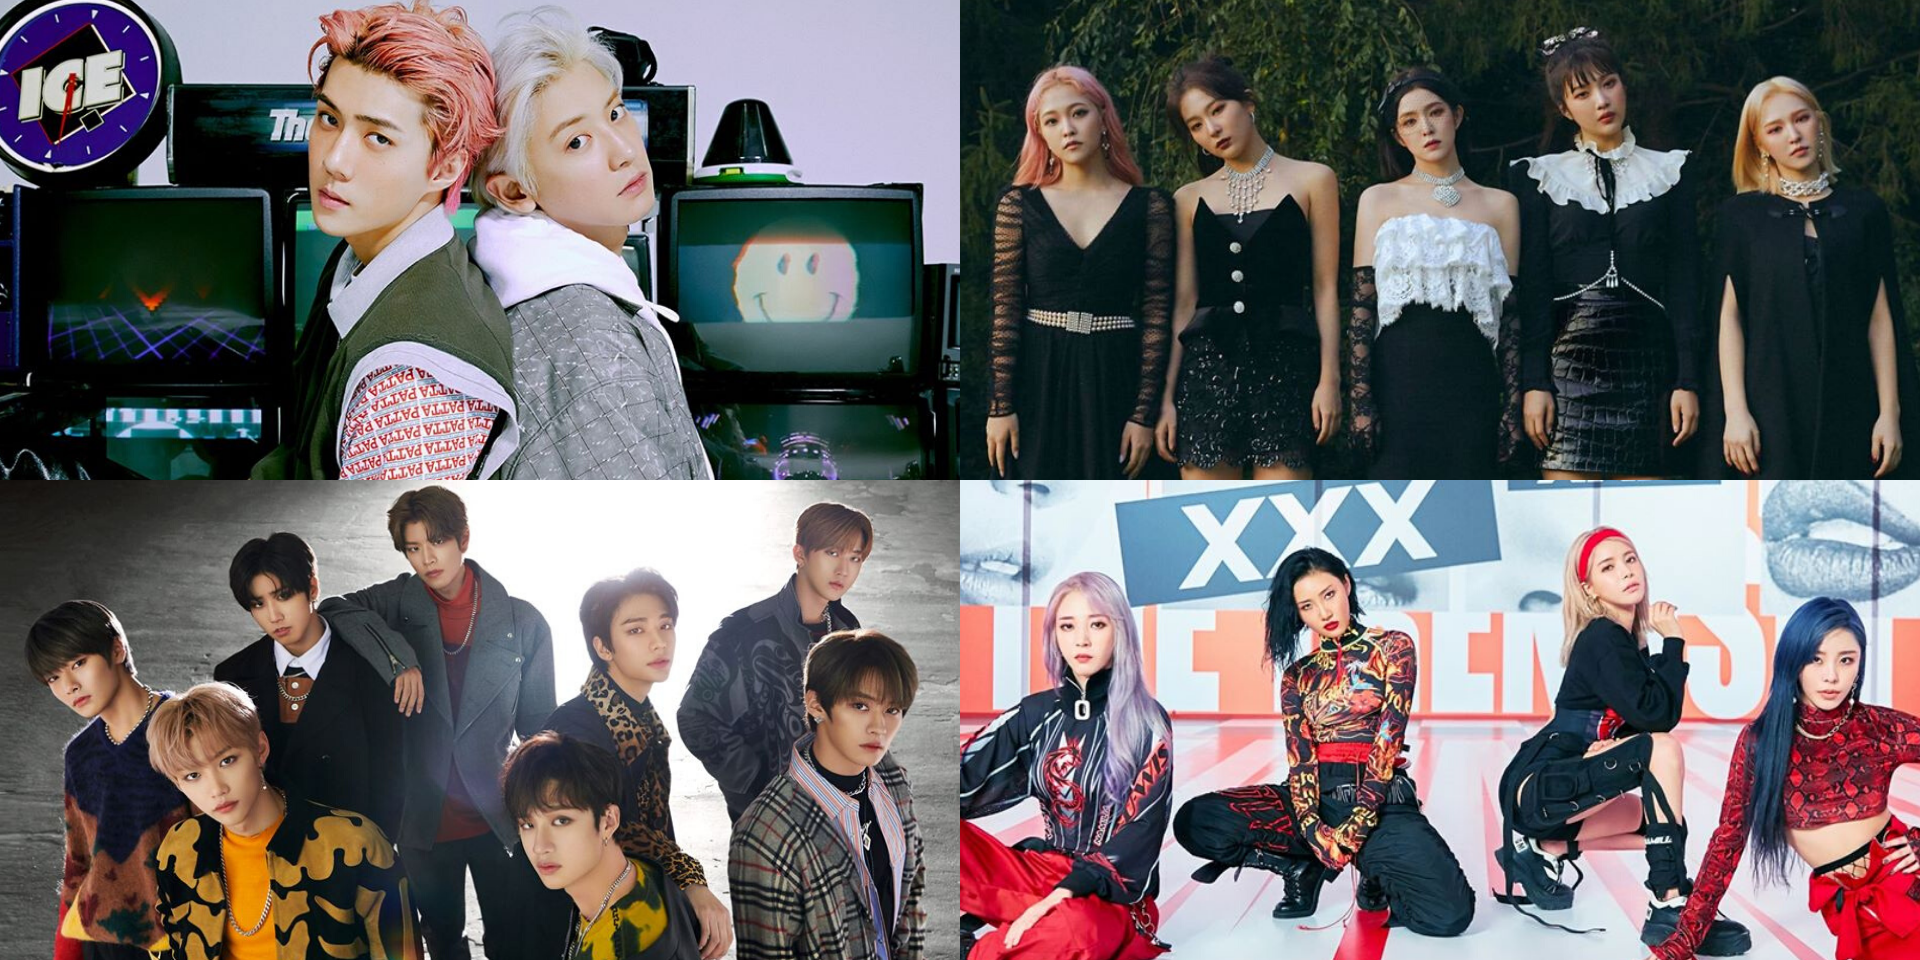 K-Pop's largest joint show, Dream Concert, launches online edition 'CONNECT:D' with Red Velvet, EXO-SC, MAMAMOO, and more